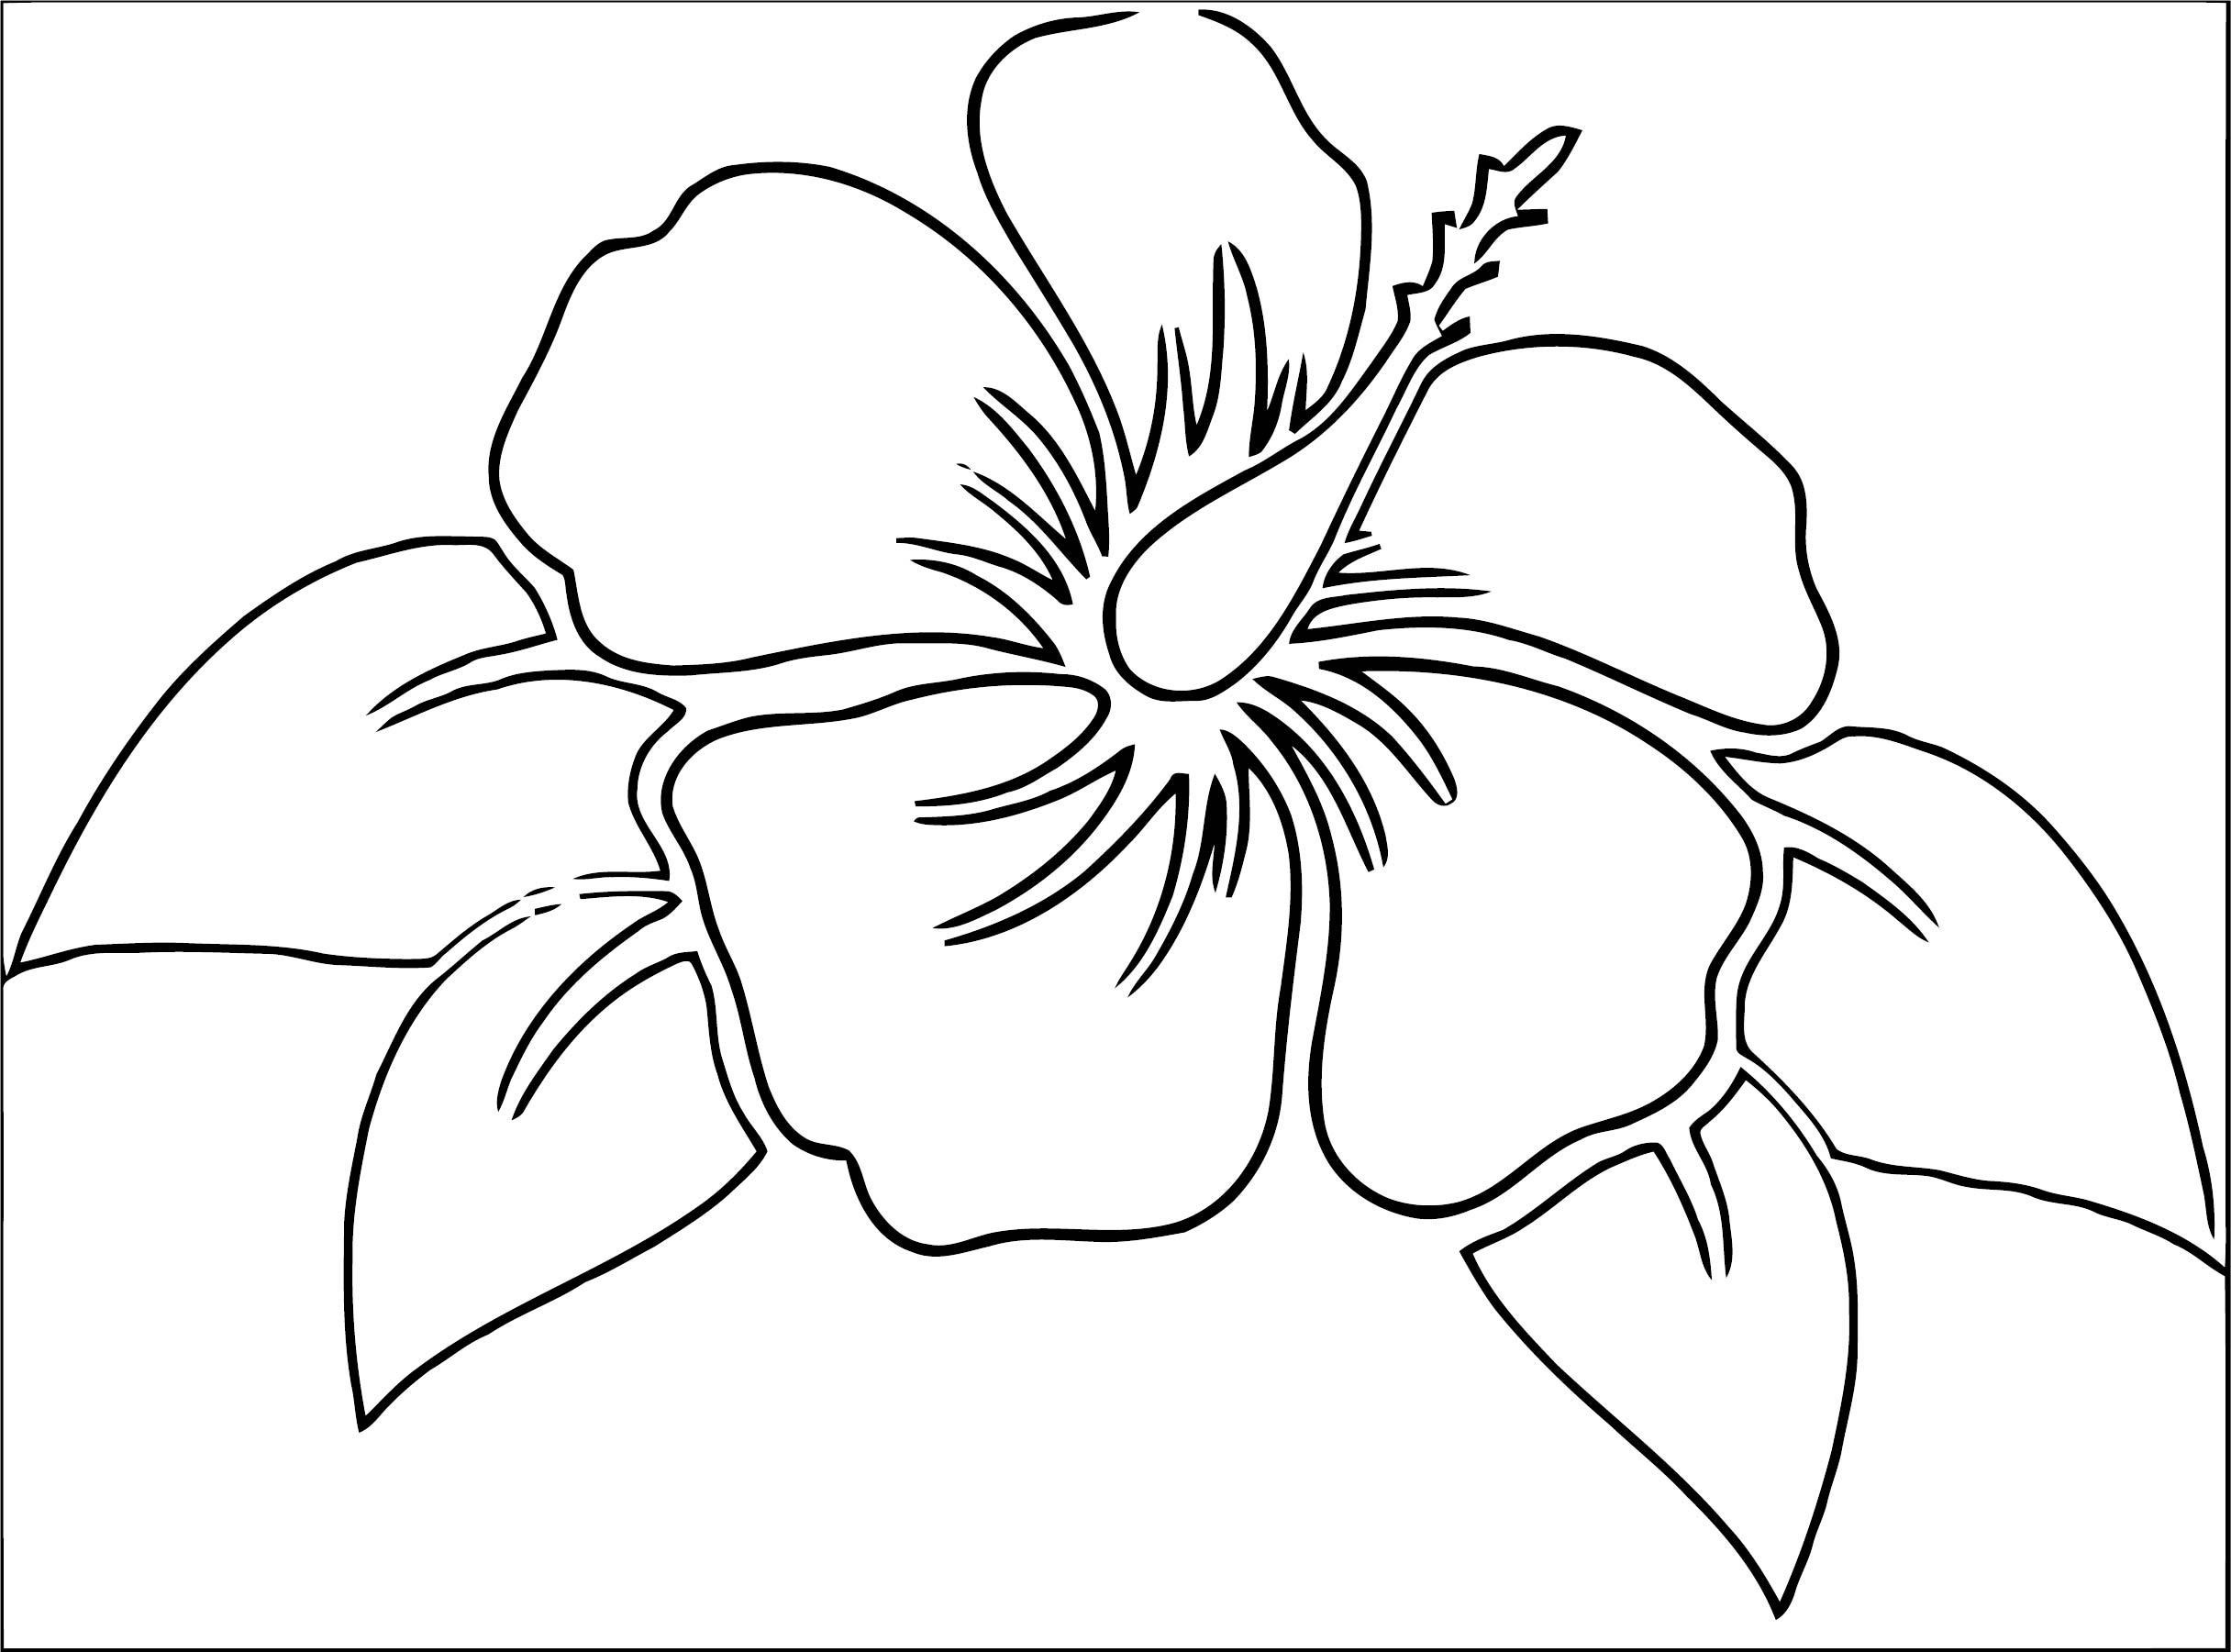 Hibiscus flower 0 coloring page for Hibiscus flower coloring page